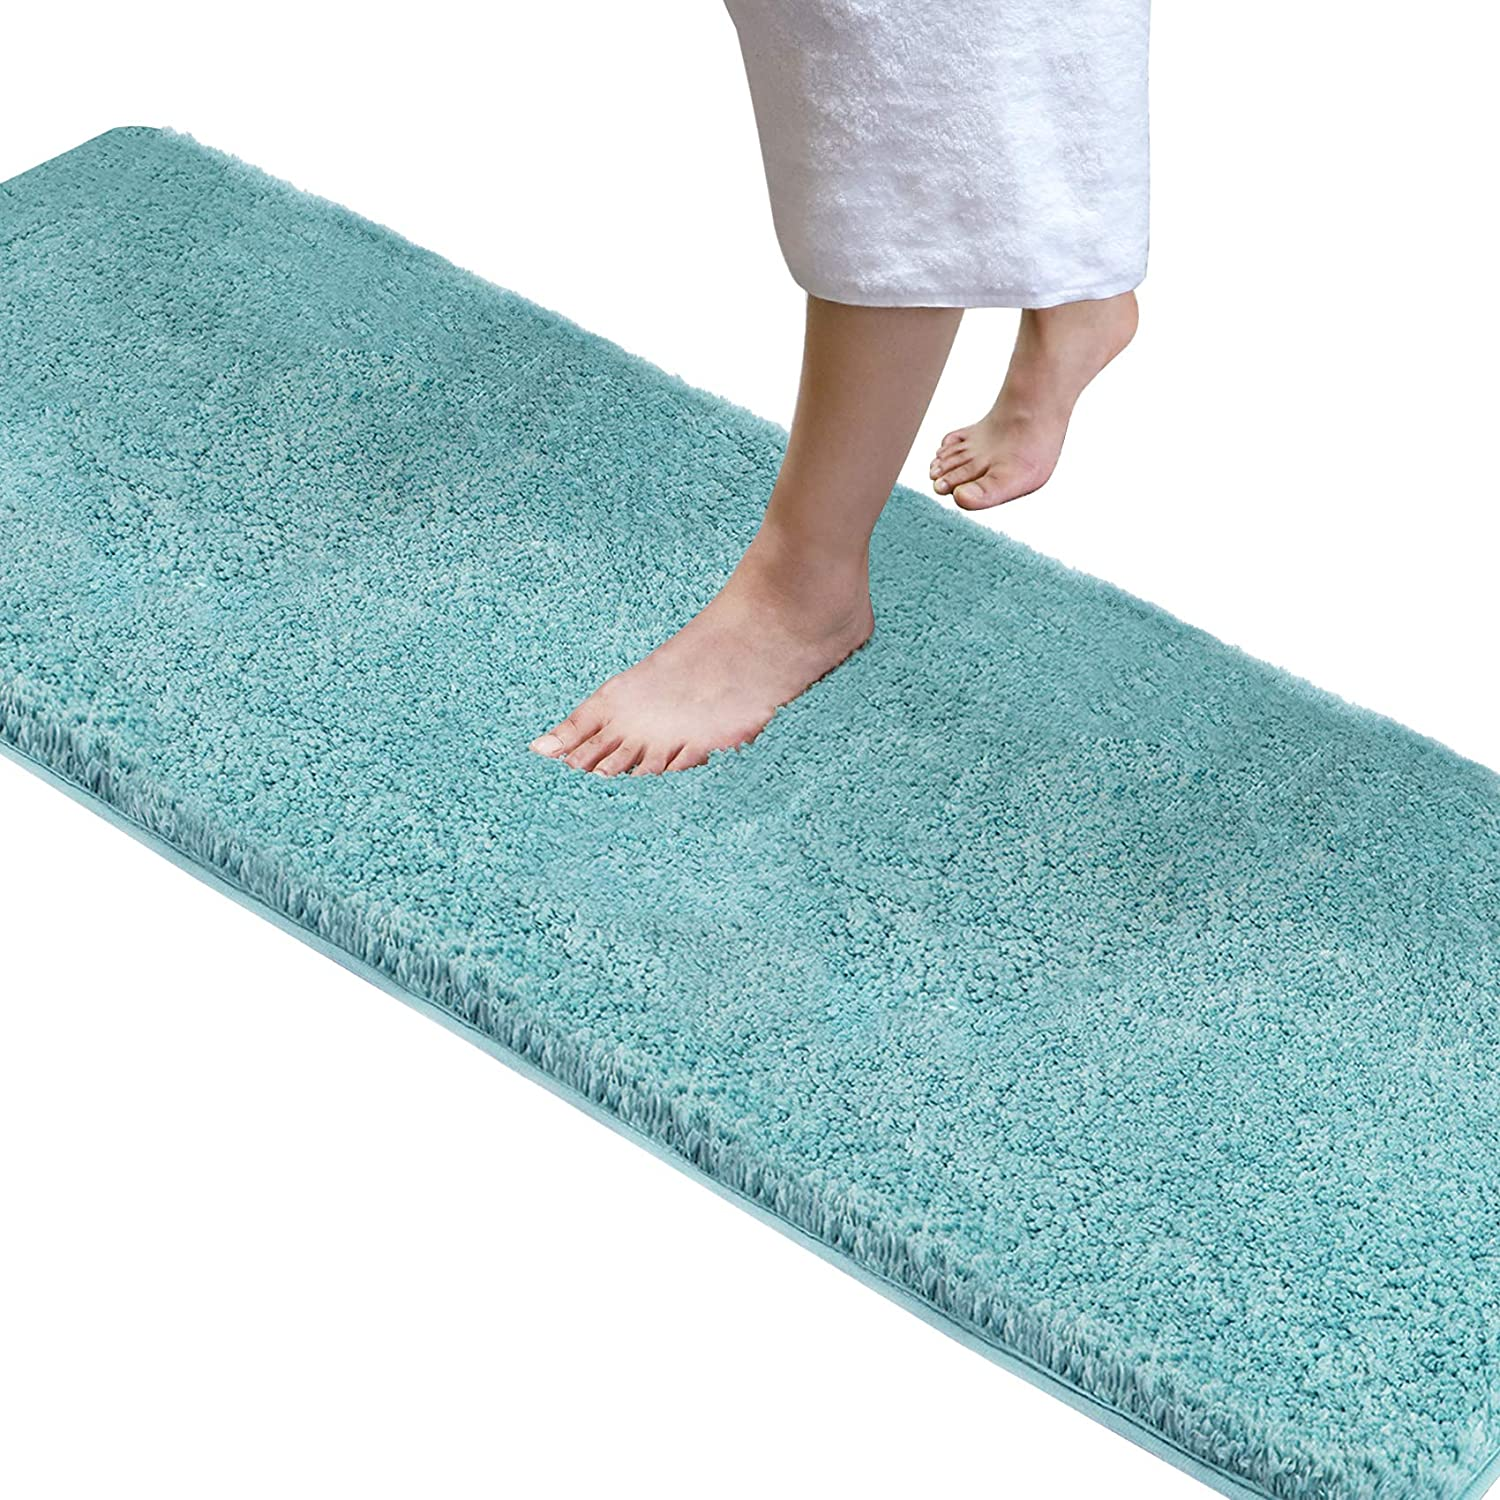 mats for textured surfaces